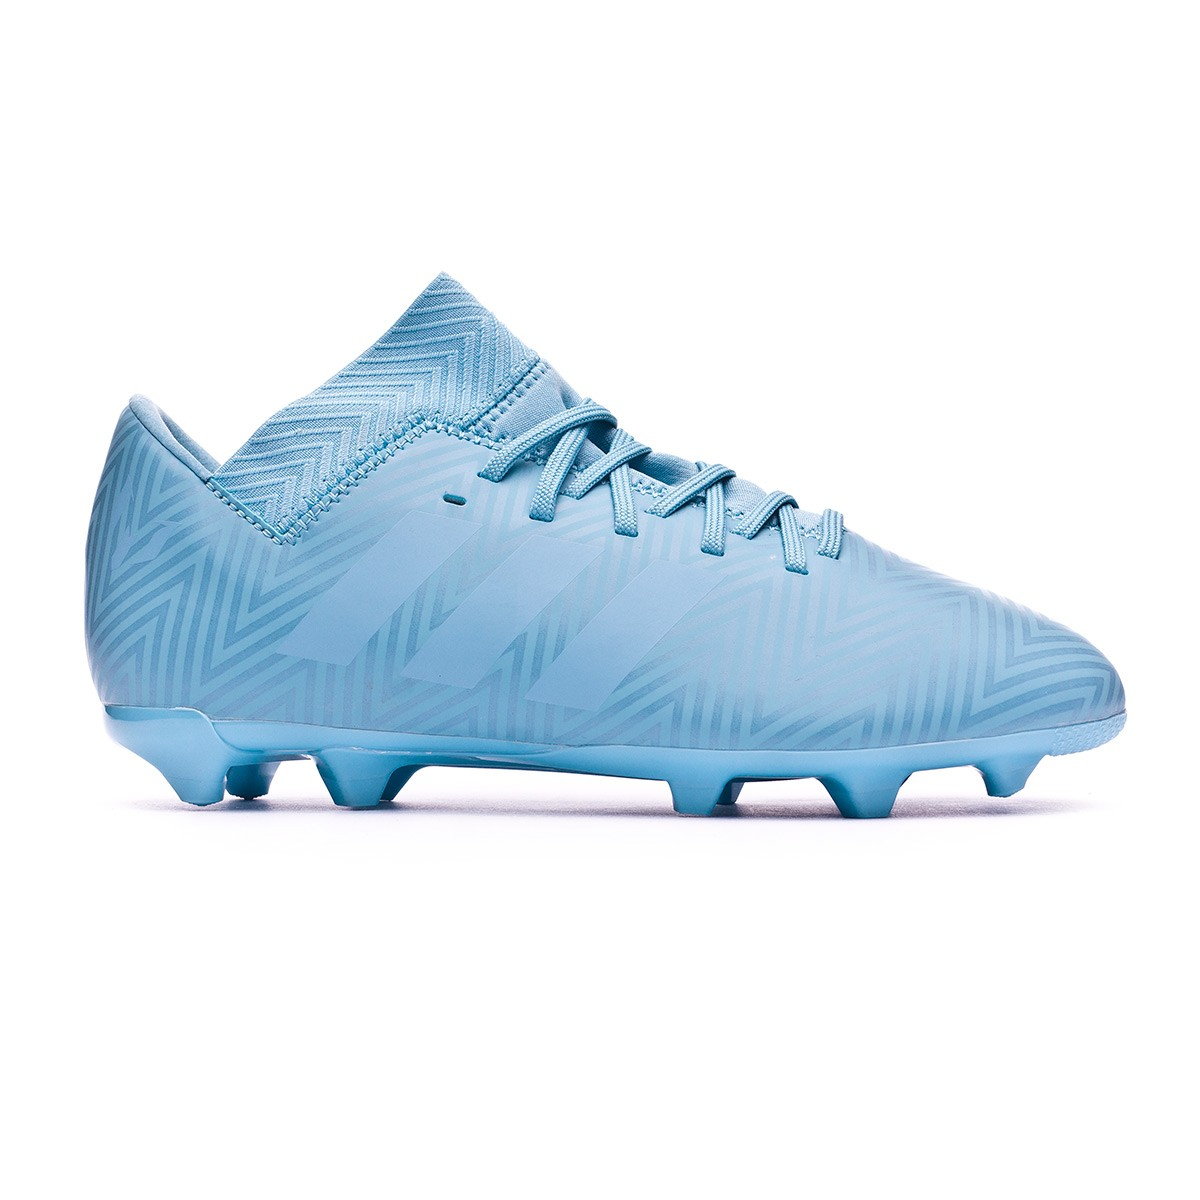 lowest price f7ada 9599f Football Boots adidas Kids Nemeziz Messi 18.3 FG Ash blue-Raw grey - Tienda  de fútbol Fútbol Emotion